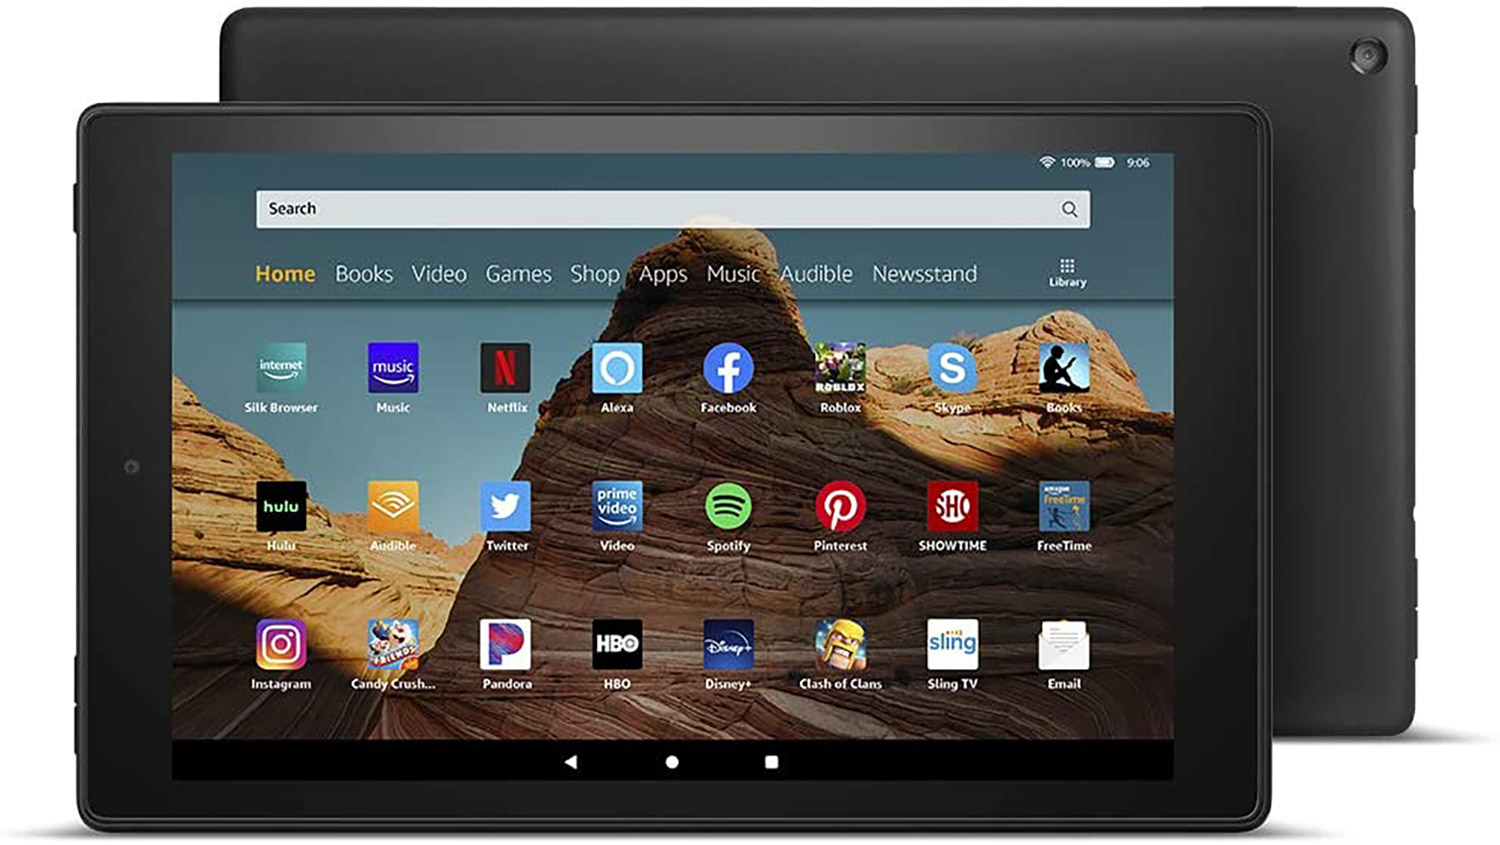 Amazon Com Roblox Gold Series 1 Celebrity Collection Serie 3 4 Amazon Prime Day 2020 Echo Dot Kindle Fire Tv And Tablet Deals Ew Com